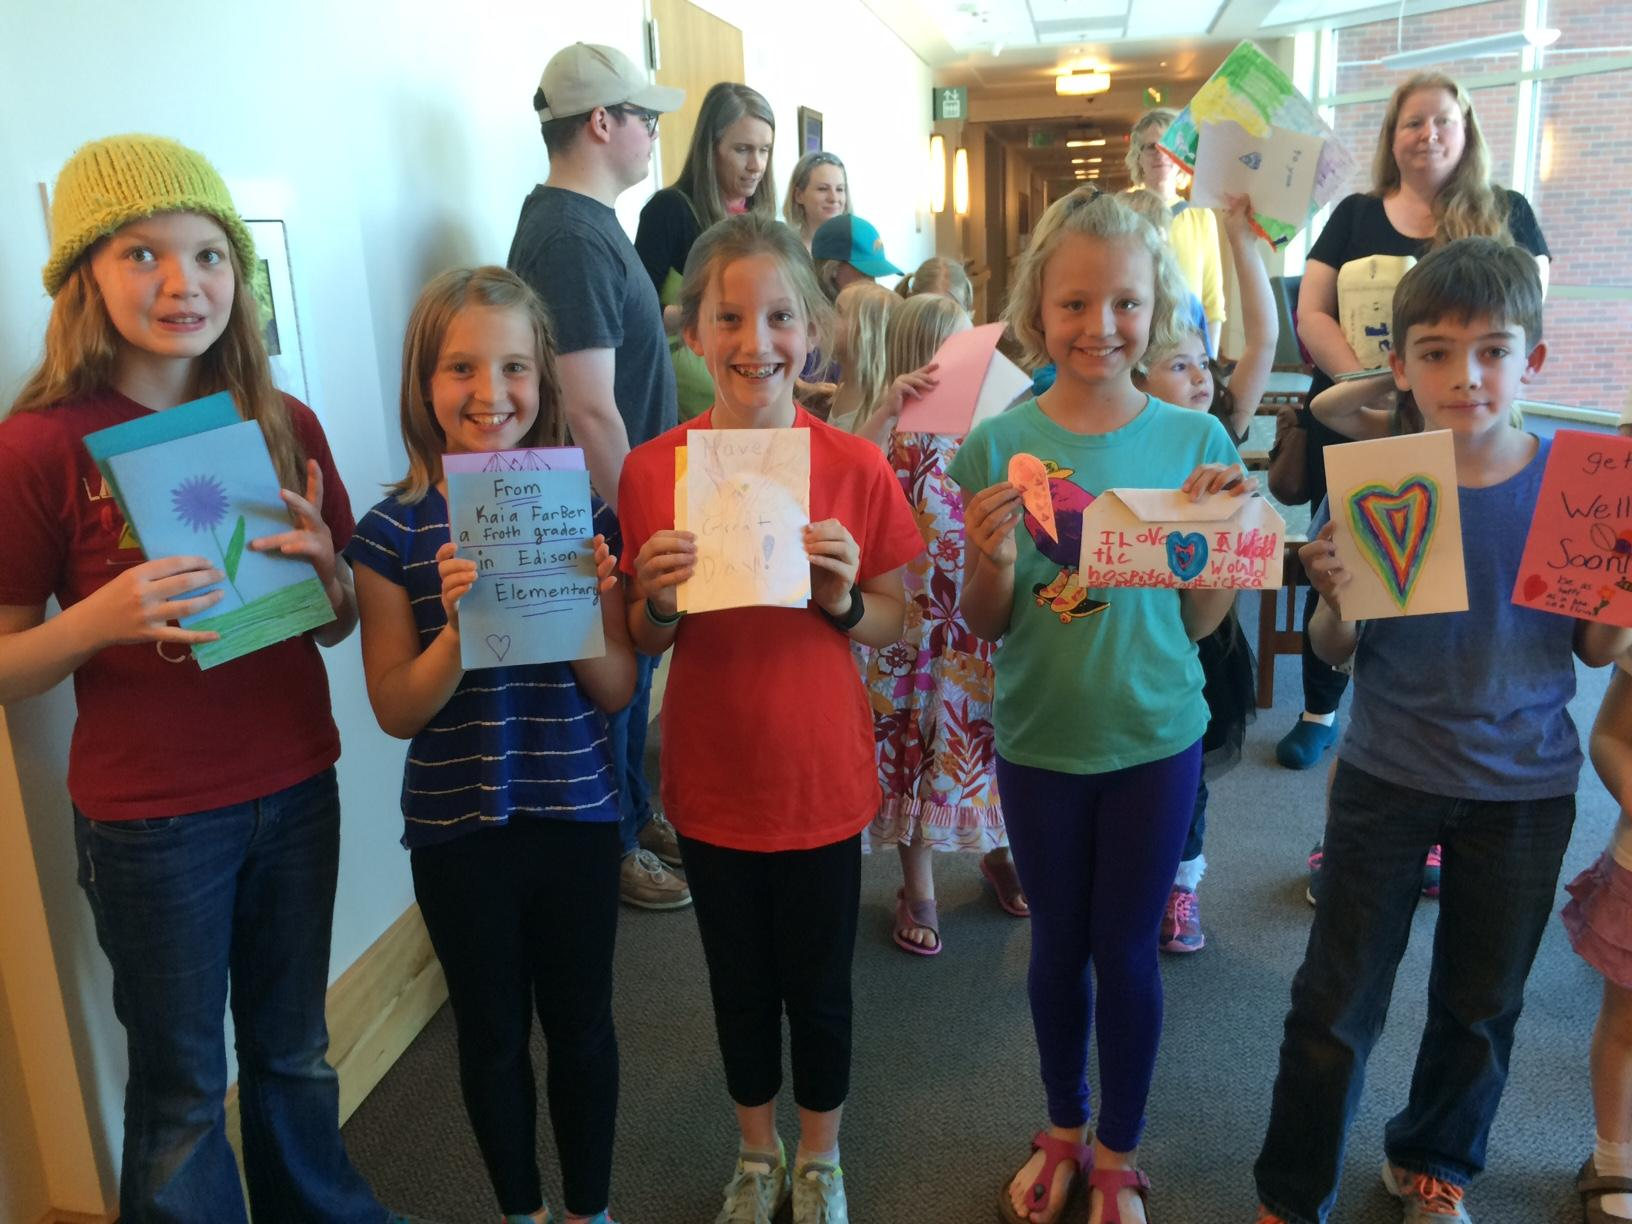 Edison Elementary School students delivered handmade cards to patients at RiverBend Hospital. (SBG photo)